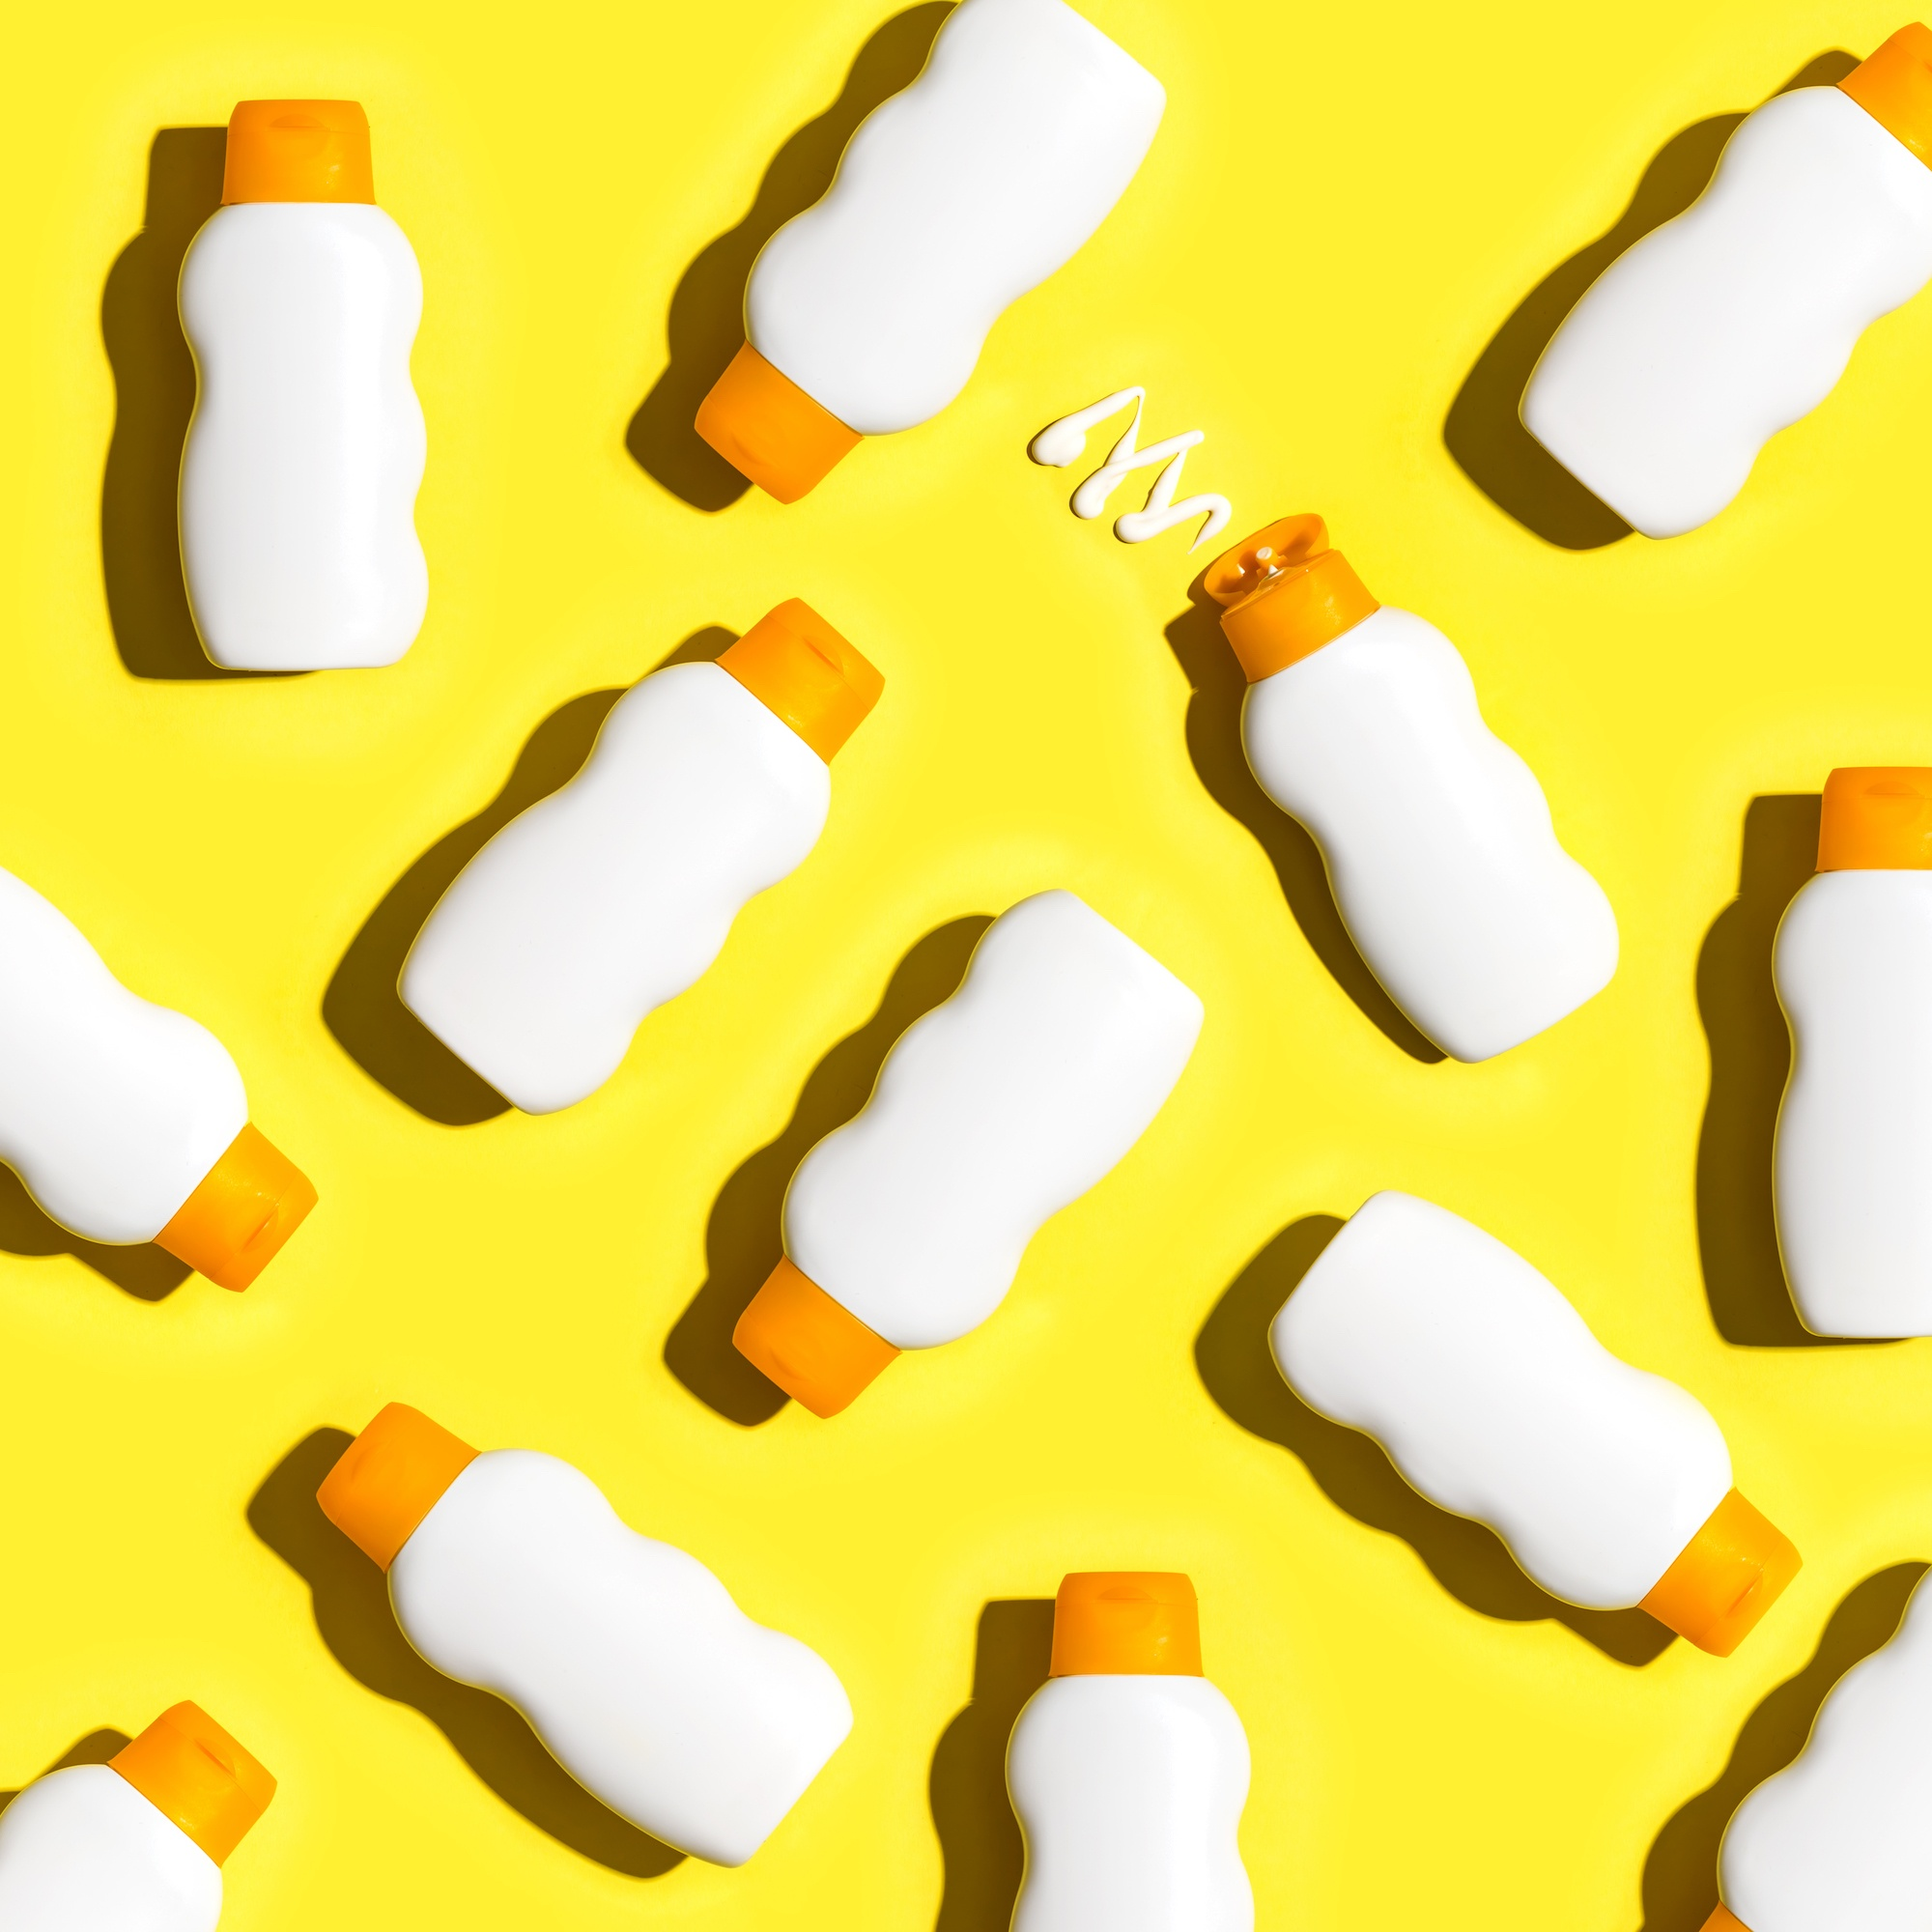 Sunscreen bottles arranged on a bright yellow background